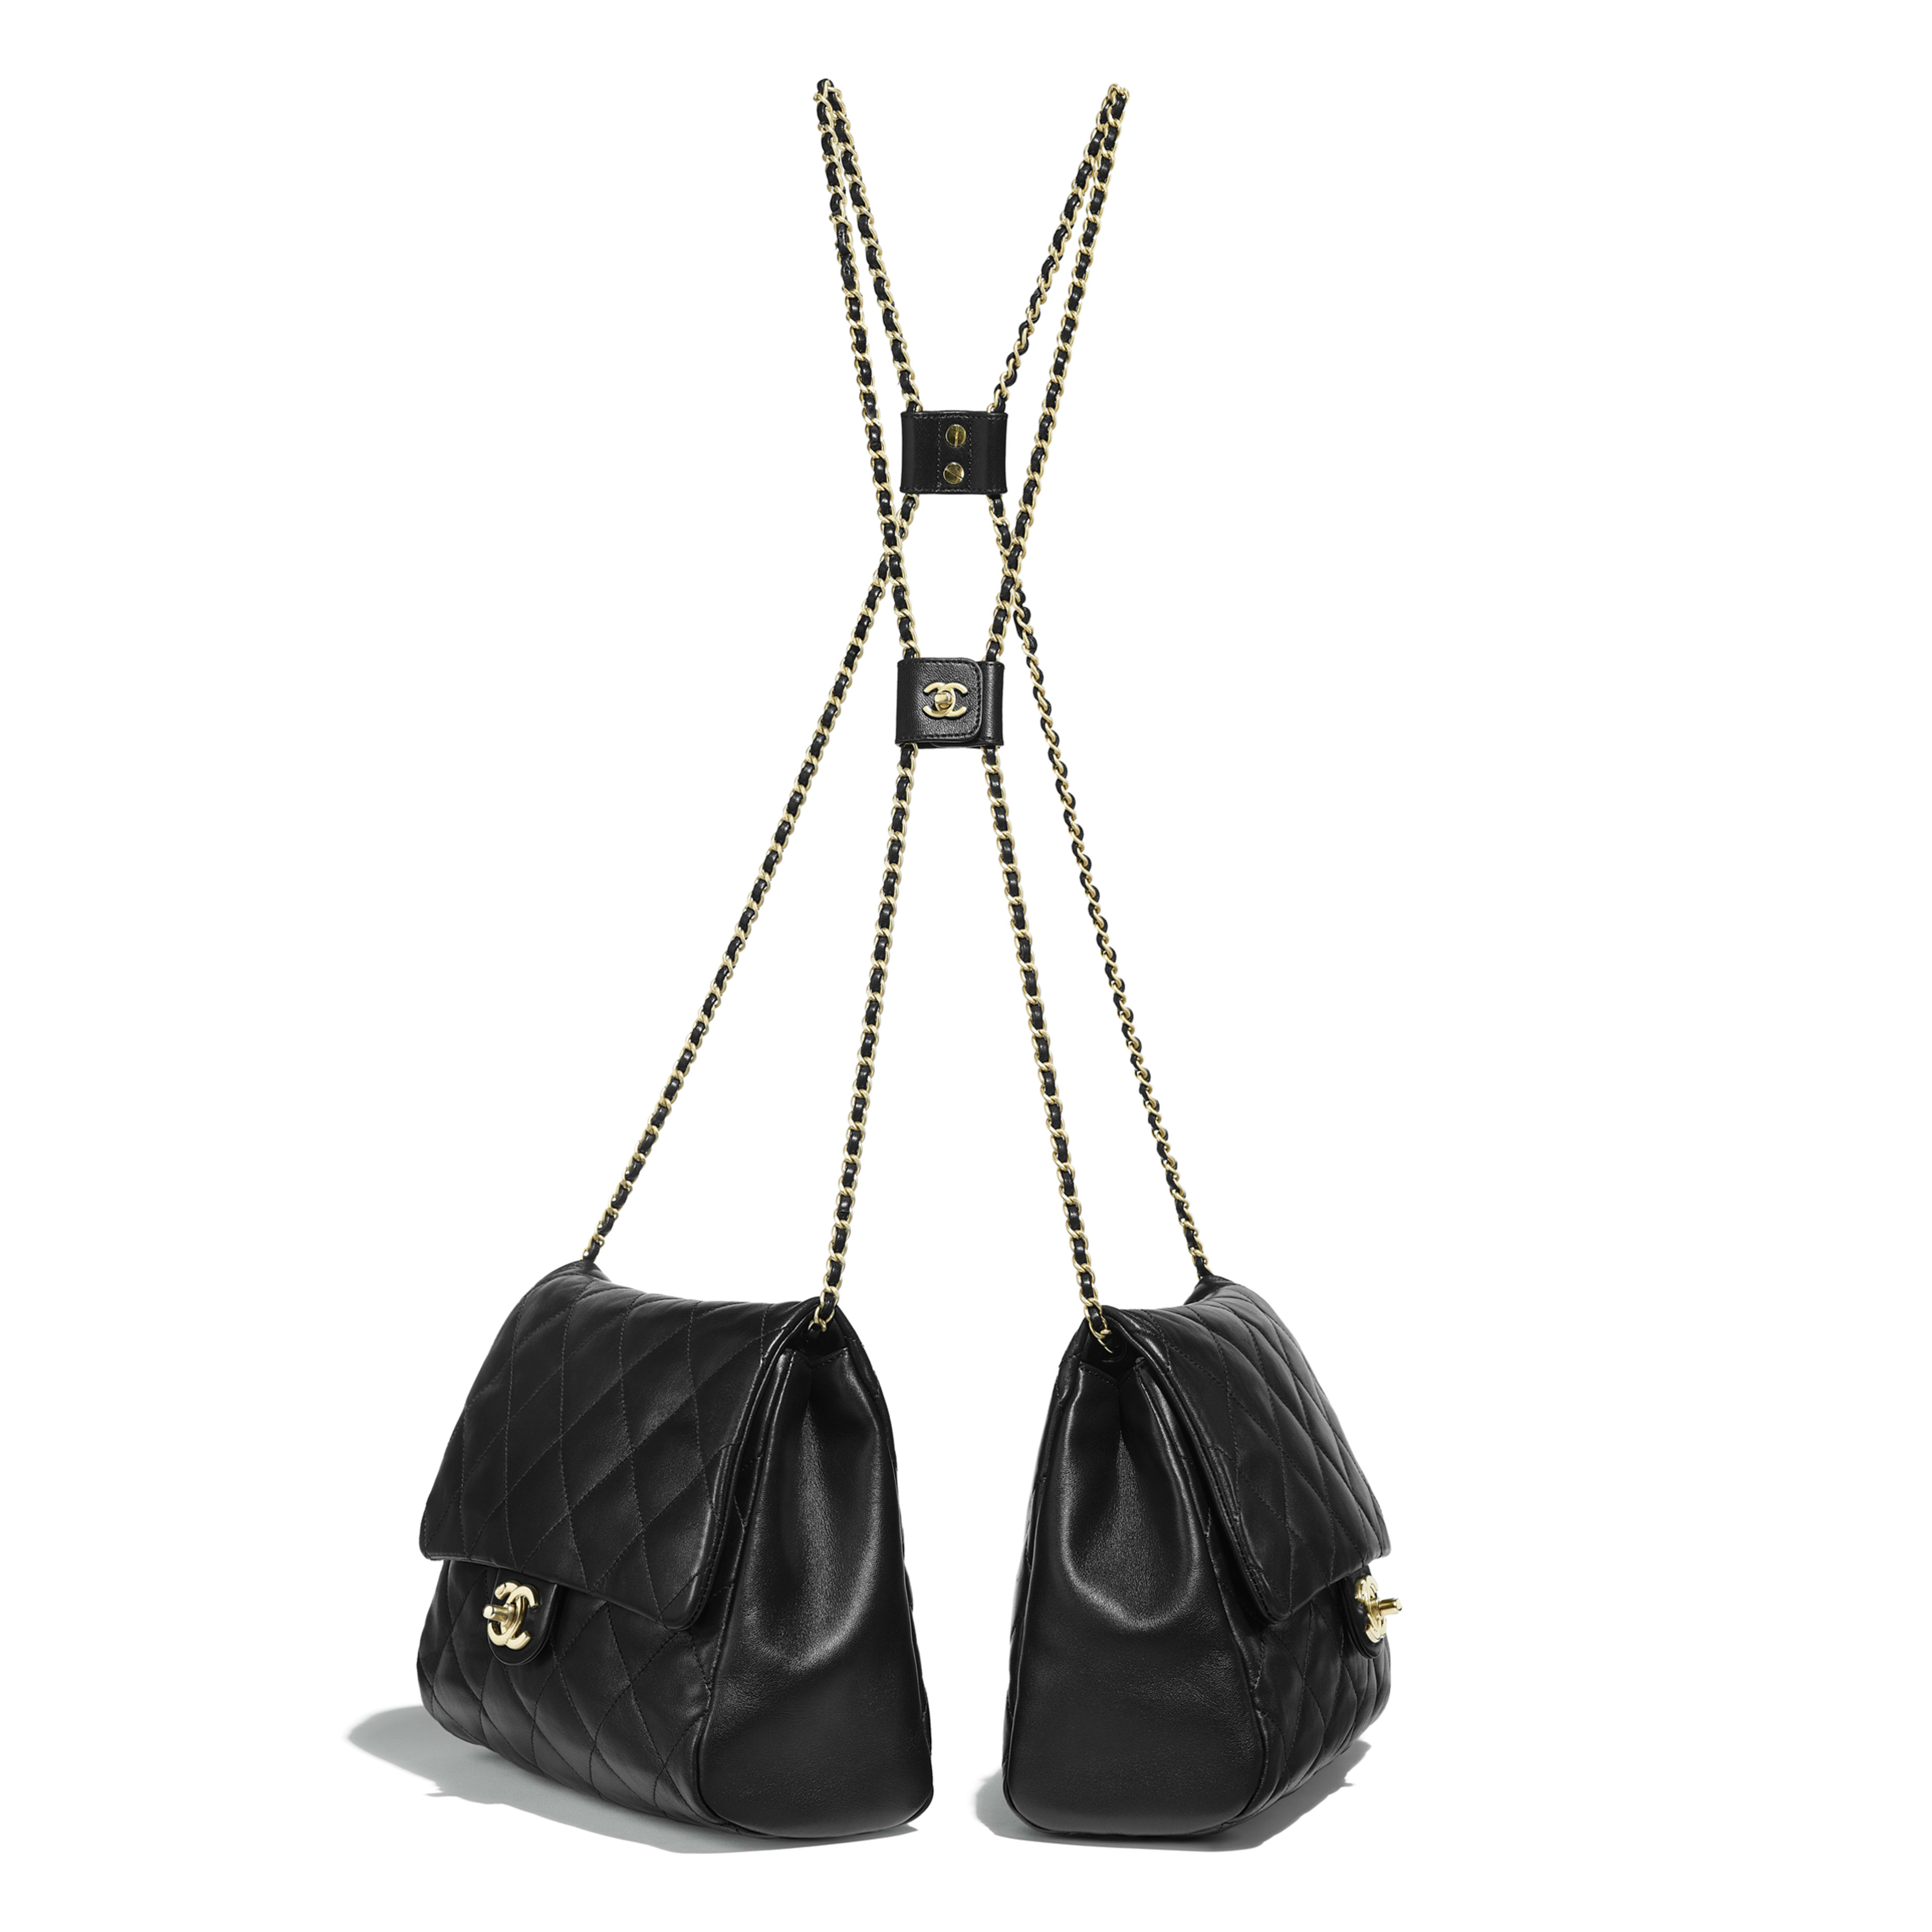 d66fa2cafc0c Large Side-Packs - Black - Lambskin   Gold-Tone Metal - Other view ...